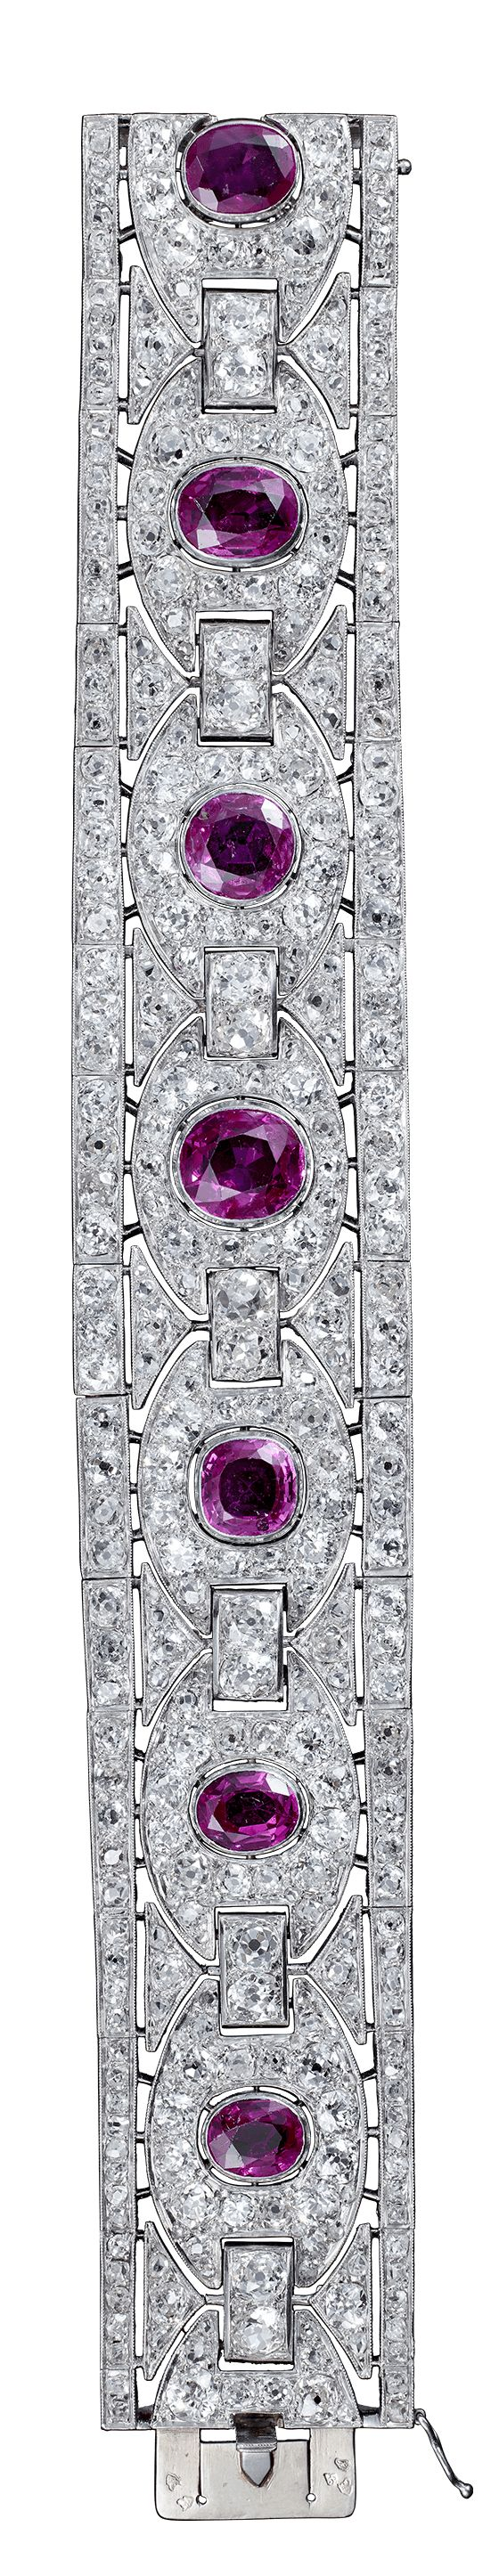 Marcel Chaumet - An Art Deco platinum, ruby and diamond bracelet, 1930-1940. #Chaumet #ArtDeco